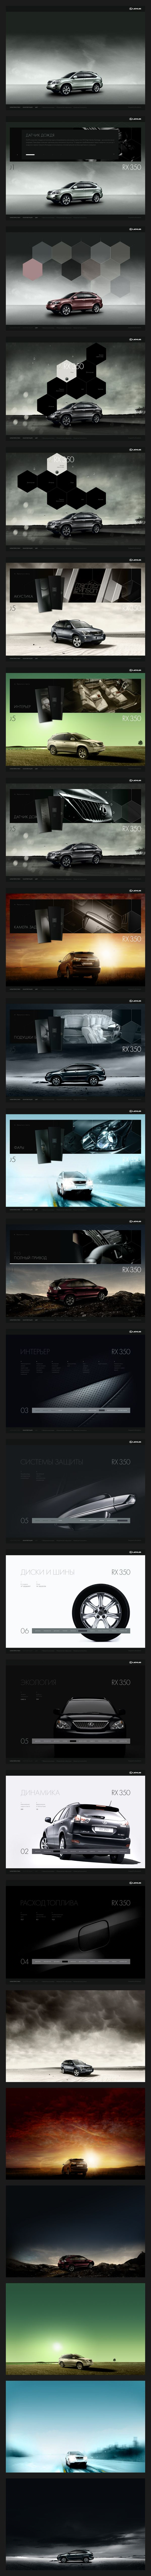 Lexus RX350 v.2 by Alex Kudryavtsev, via Behance